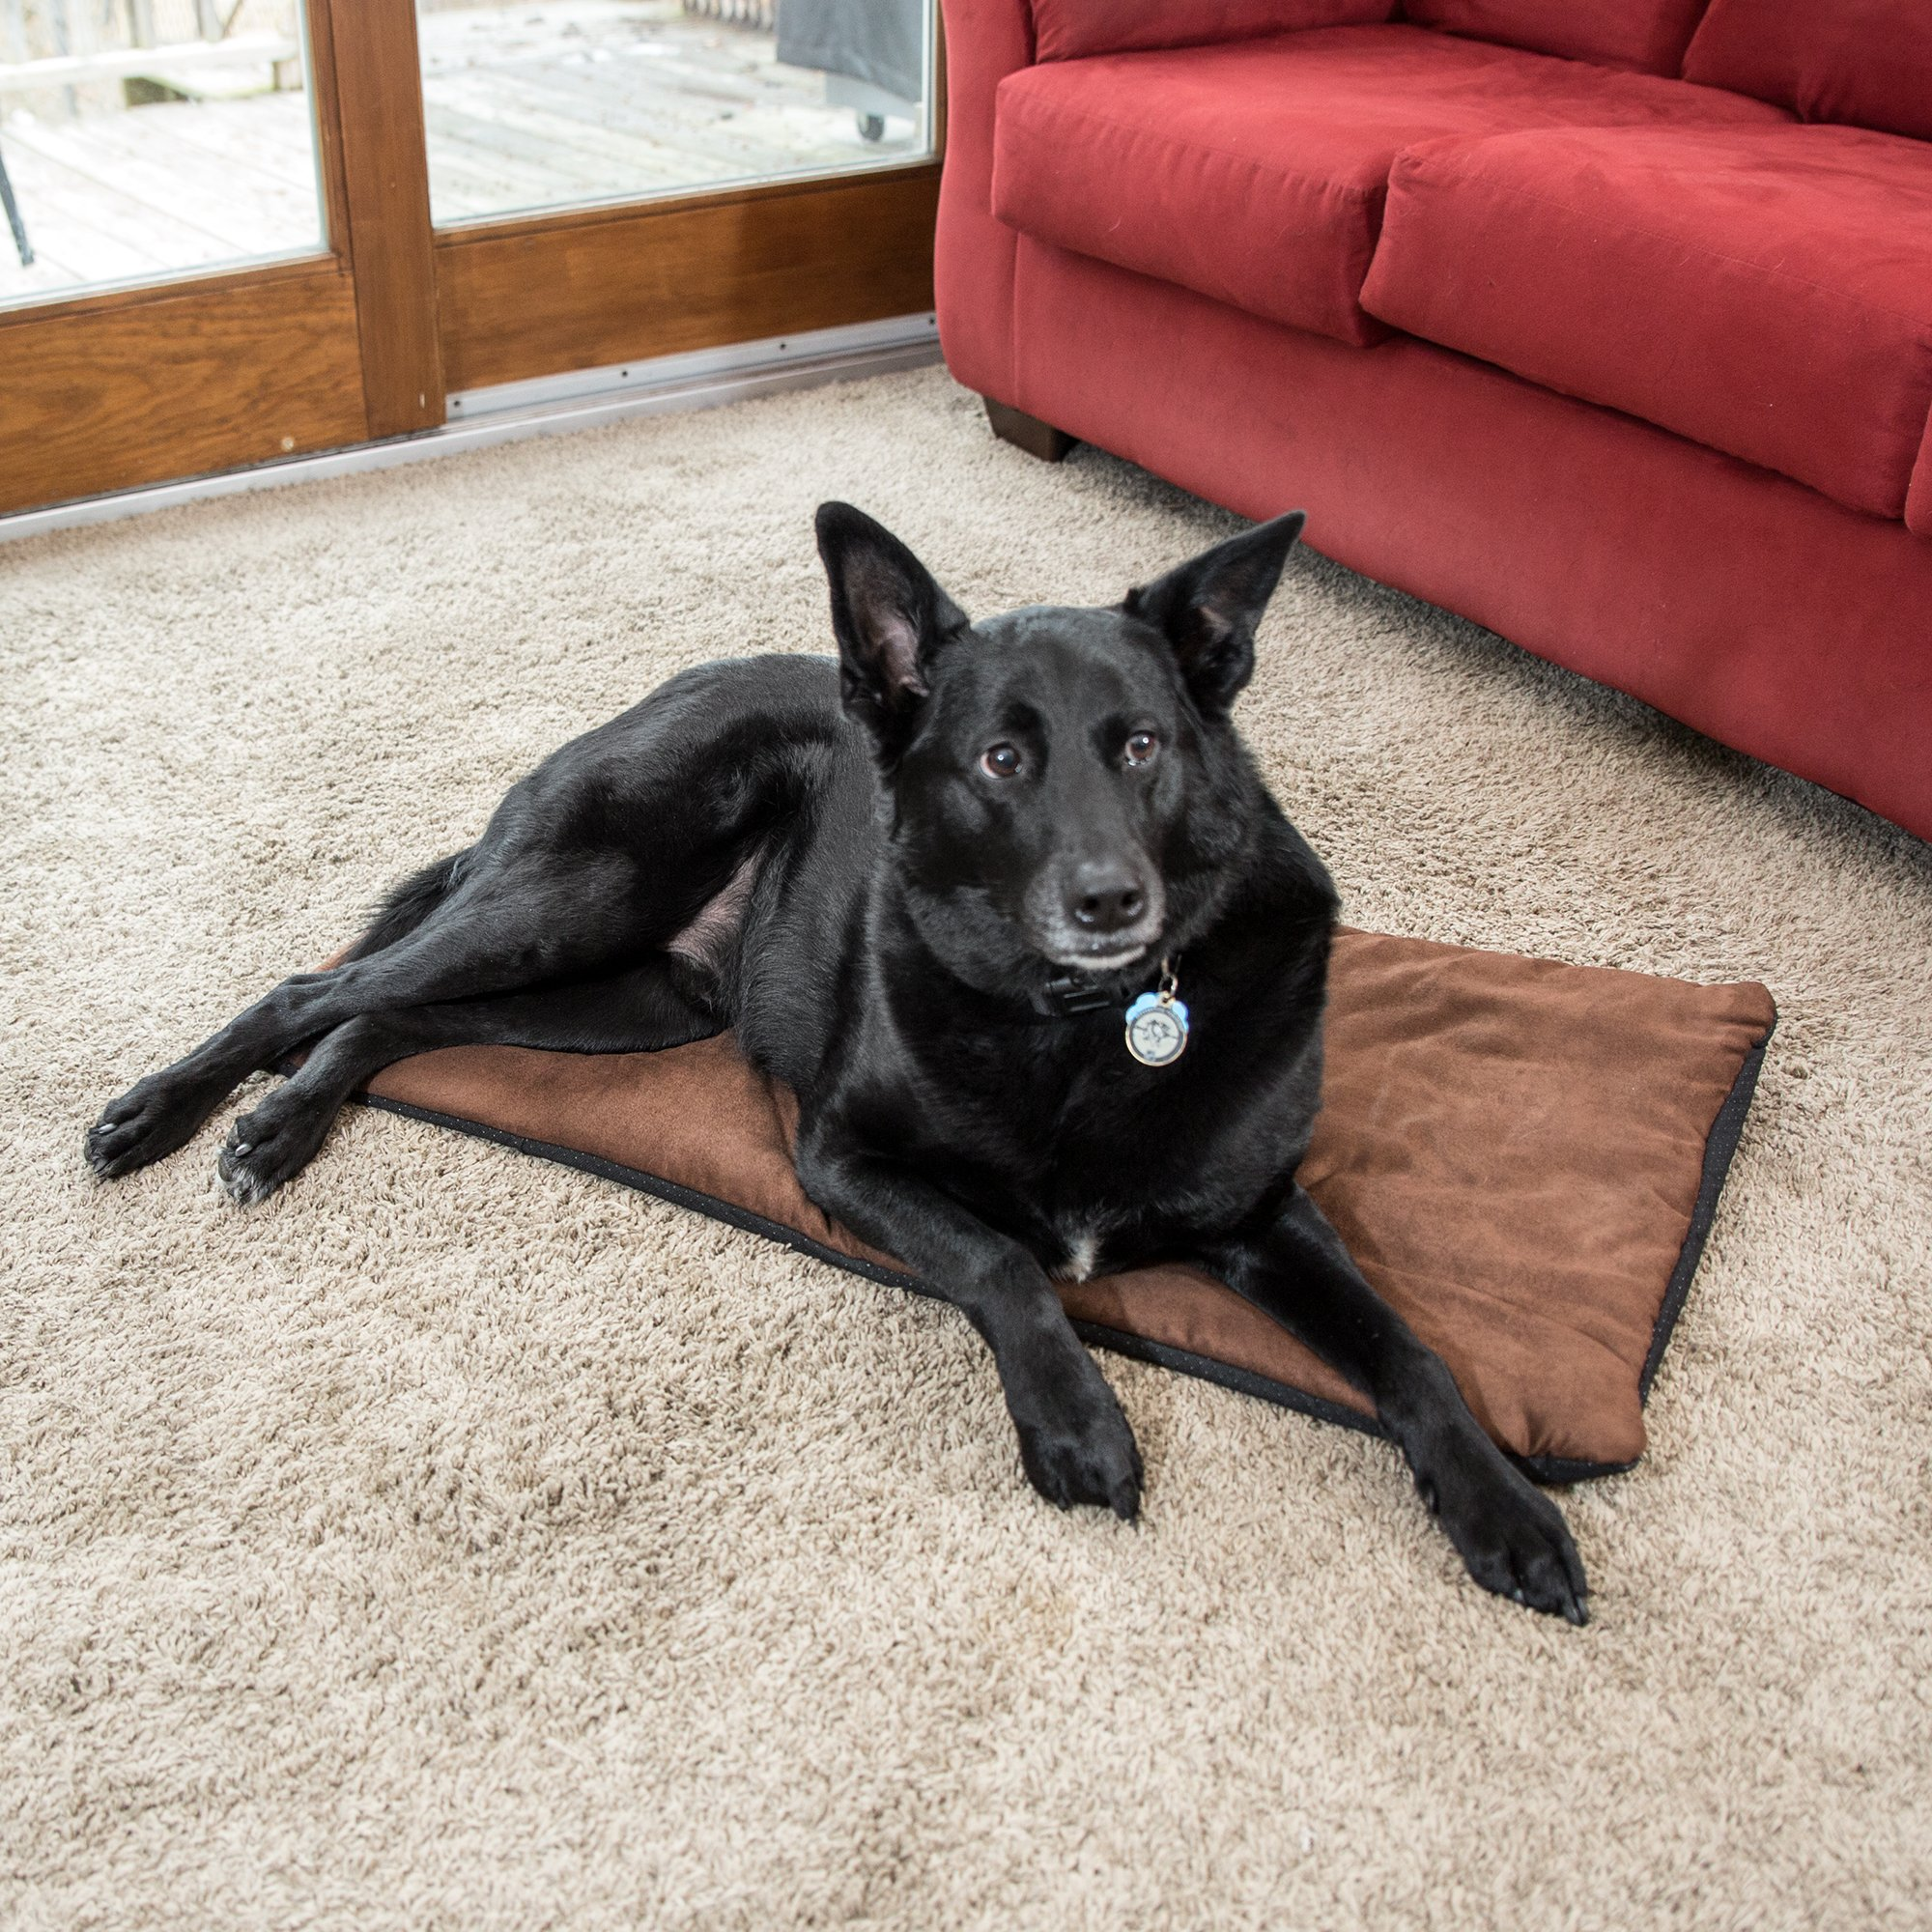 Premium Pet Bed Mat Soft Self Warming Dog Bed Crate Pad For Dogs And Cats Medium Dog Beds Small Dog Beds Cat Bed With Reflective Core Puppy Bed